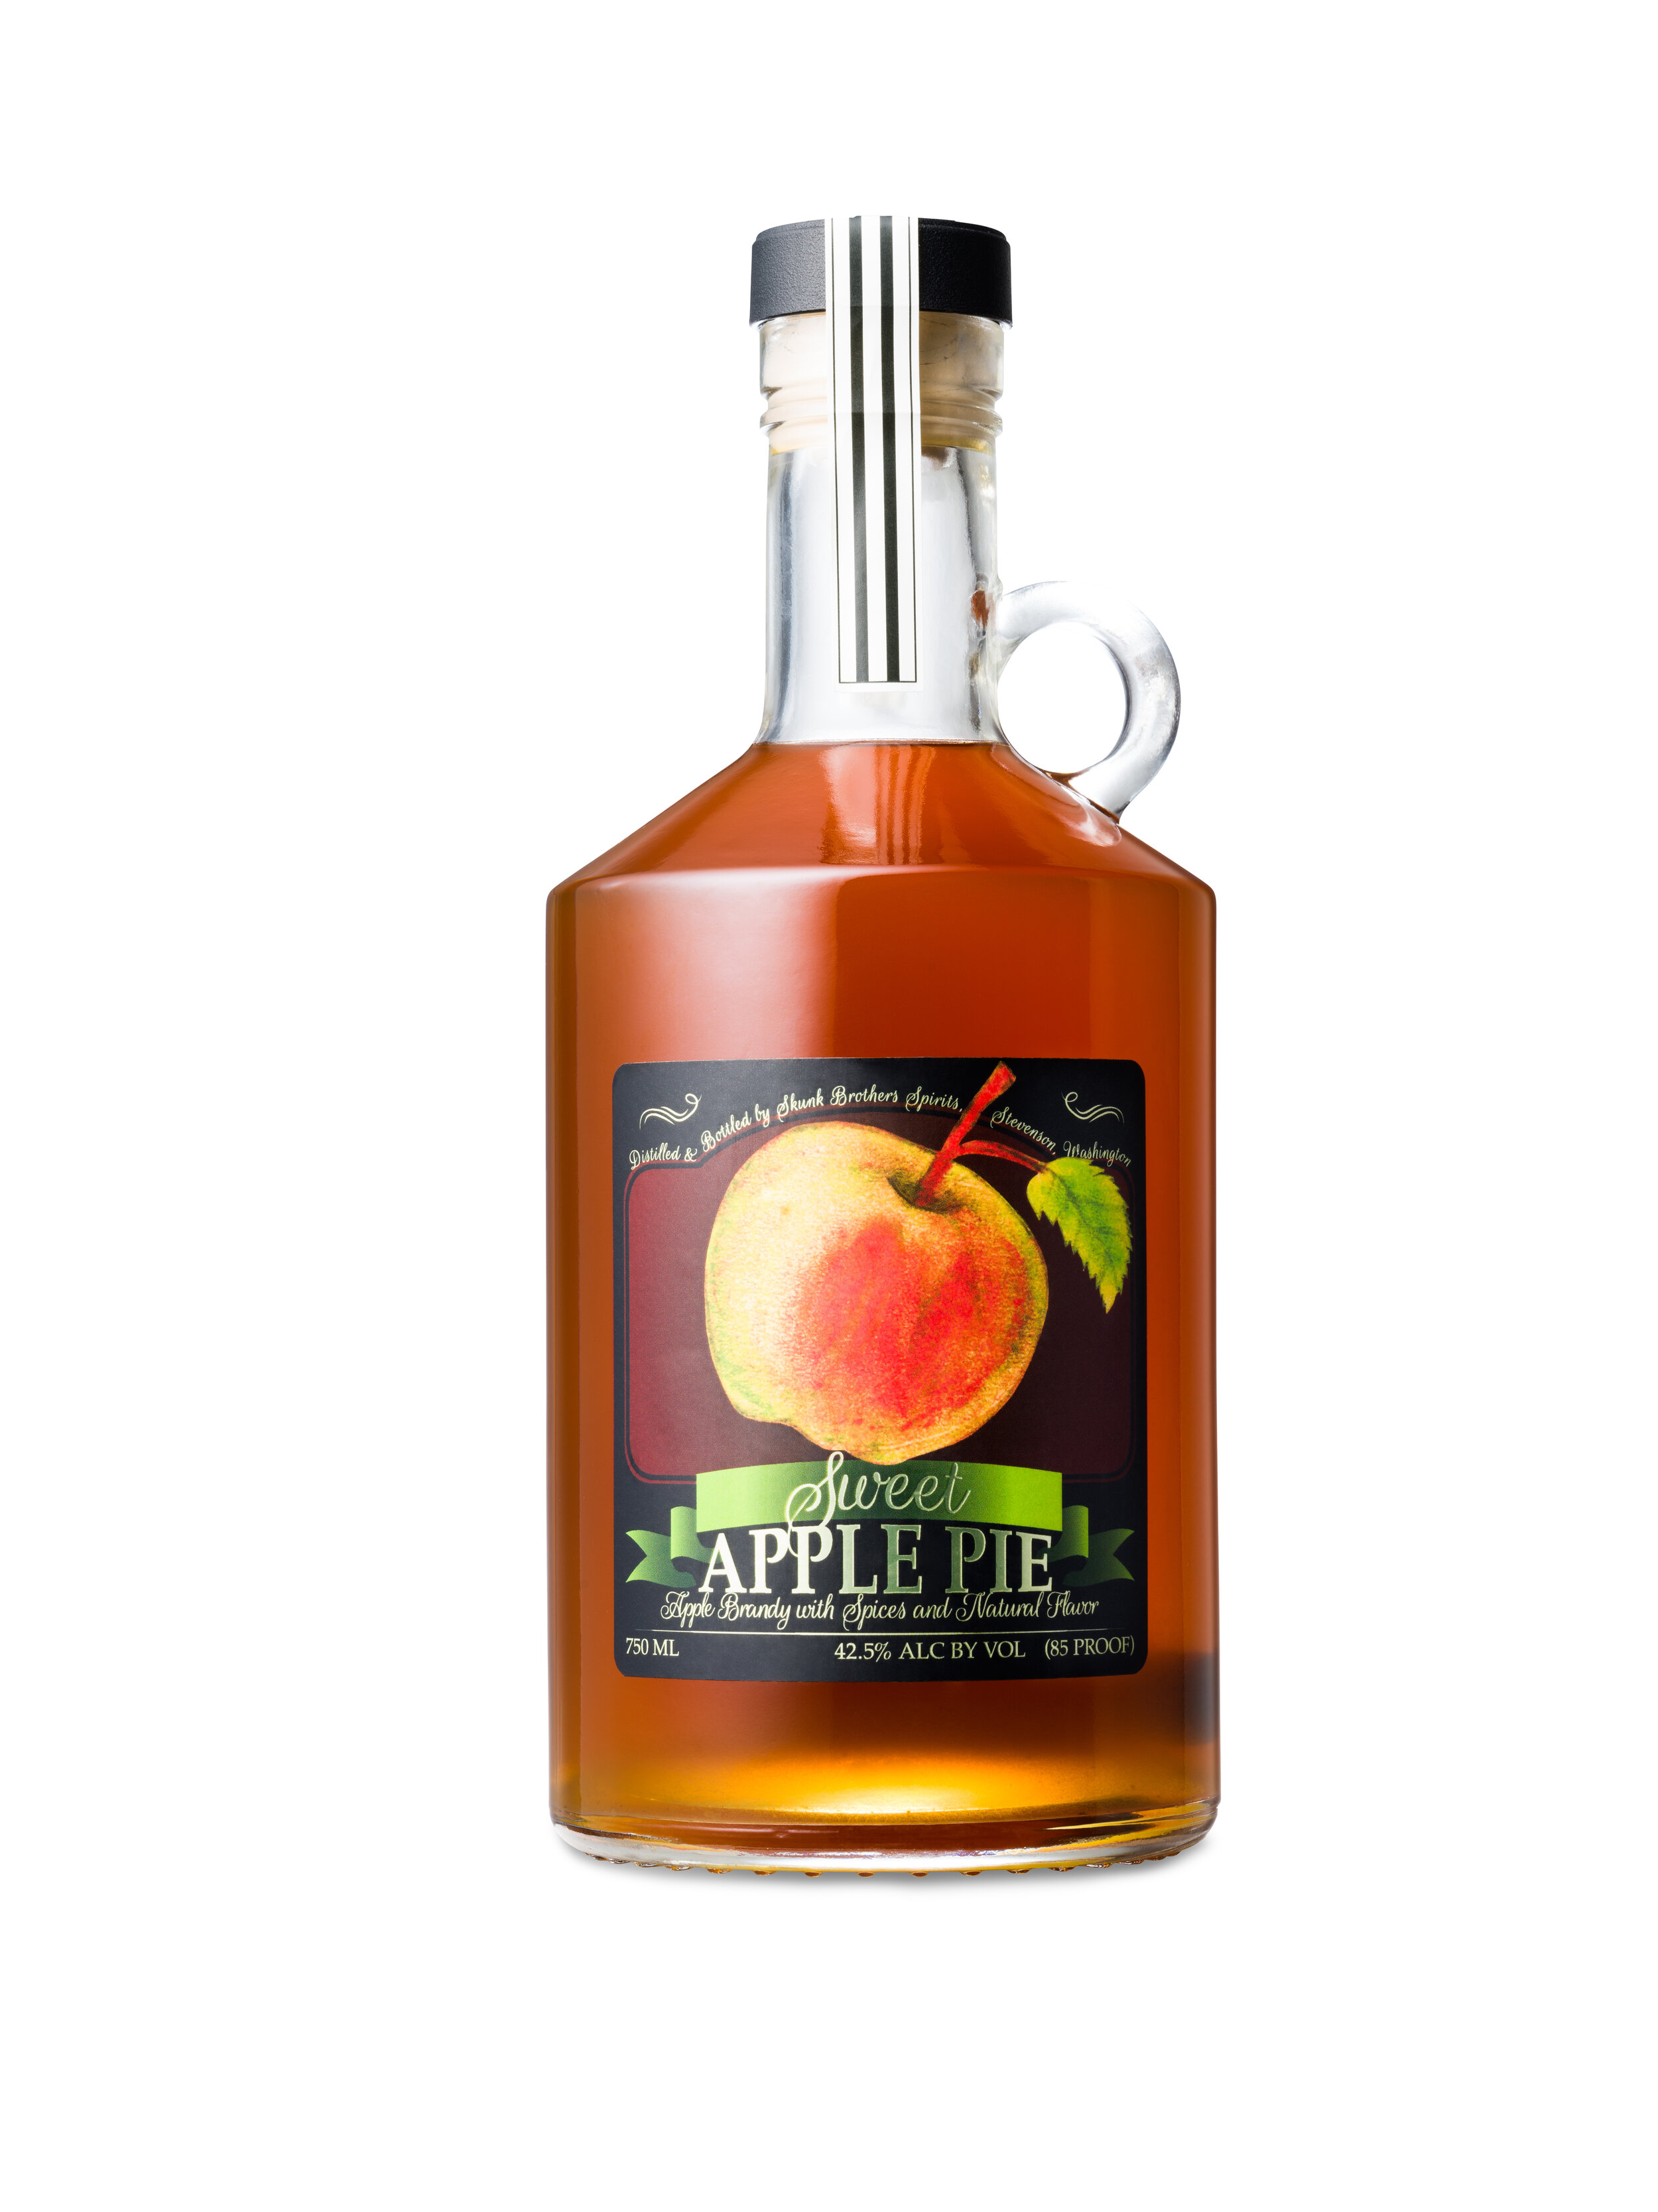 Apple Pie Brandy - 85 Proof / 750 ml & 375 mlSome may say this is not your grandmother's apple pie… well it is our grandfather's recipe that he handed down to us. We changed it up a little by making it with our own apple brandy, blended with Washington apple cider, Washington honey and brown sugar. We spice it up with cinnamon, cloves and pie spices, and a cinnamon stick added to each bottle.We like this heated up in hot cider on a cold day or pour a little over ice or into your hard cider on a hot day. Also makes a great secret ingredient to barbeque sau